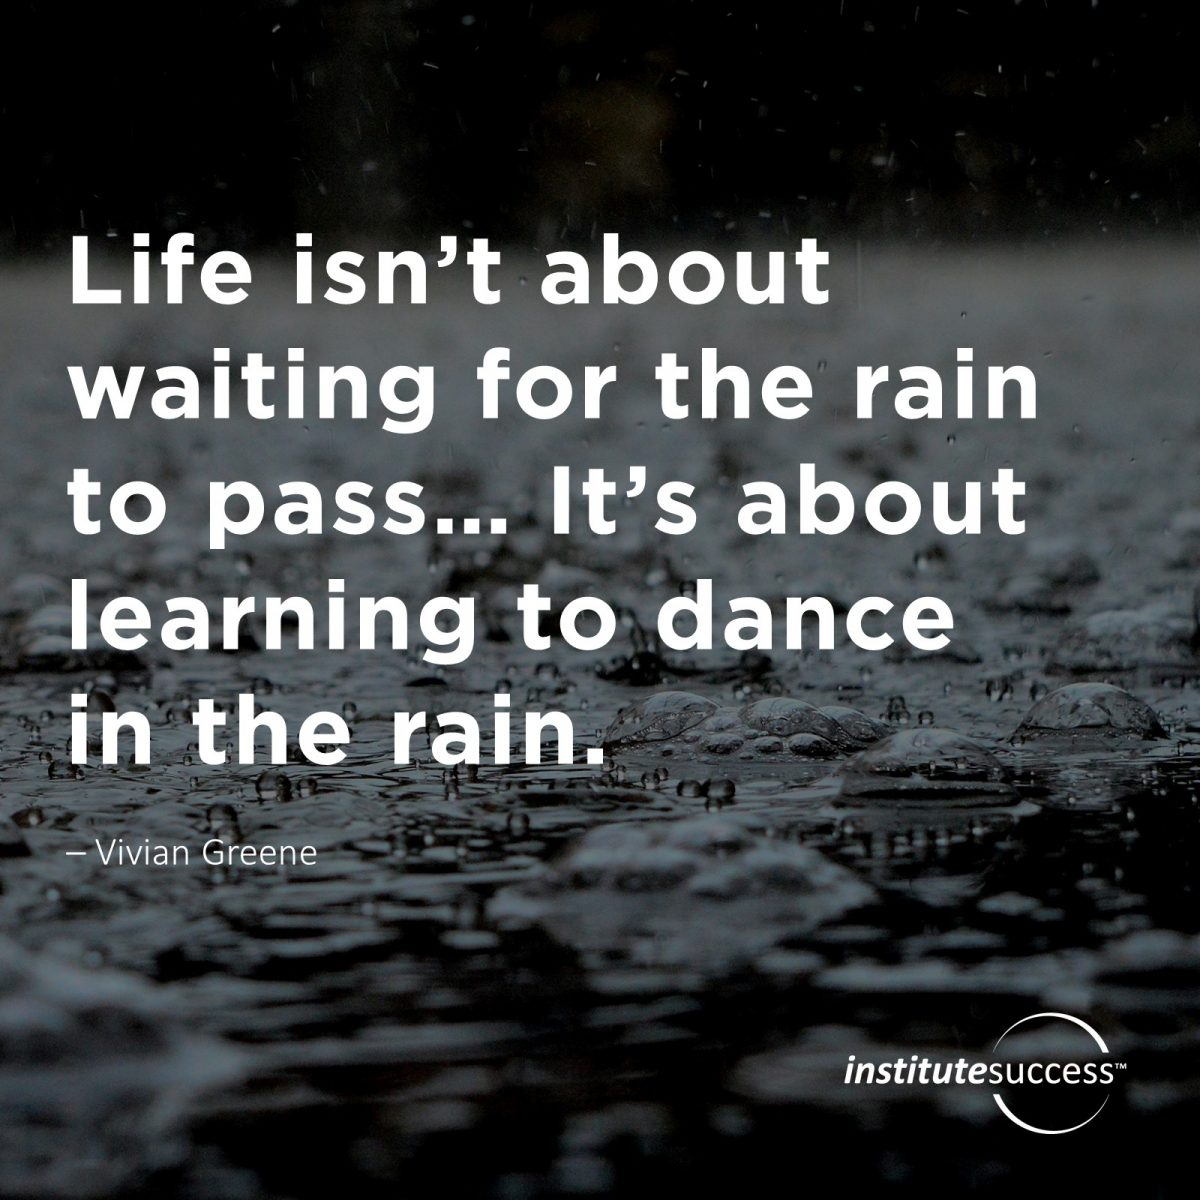 Life isn't about waiting for the rain to pass… It's about learning to dance in the rain. Vivian Greene